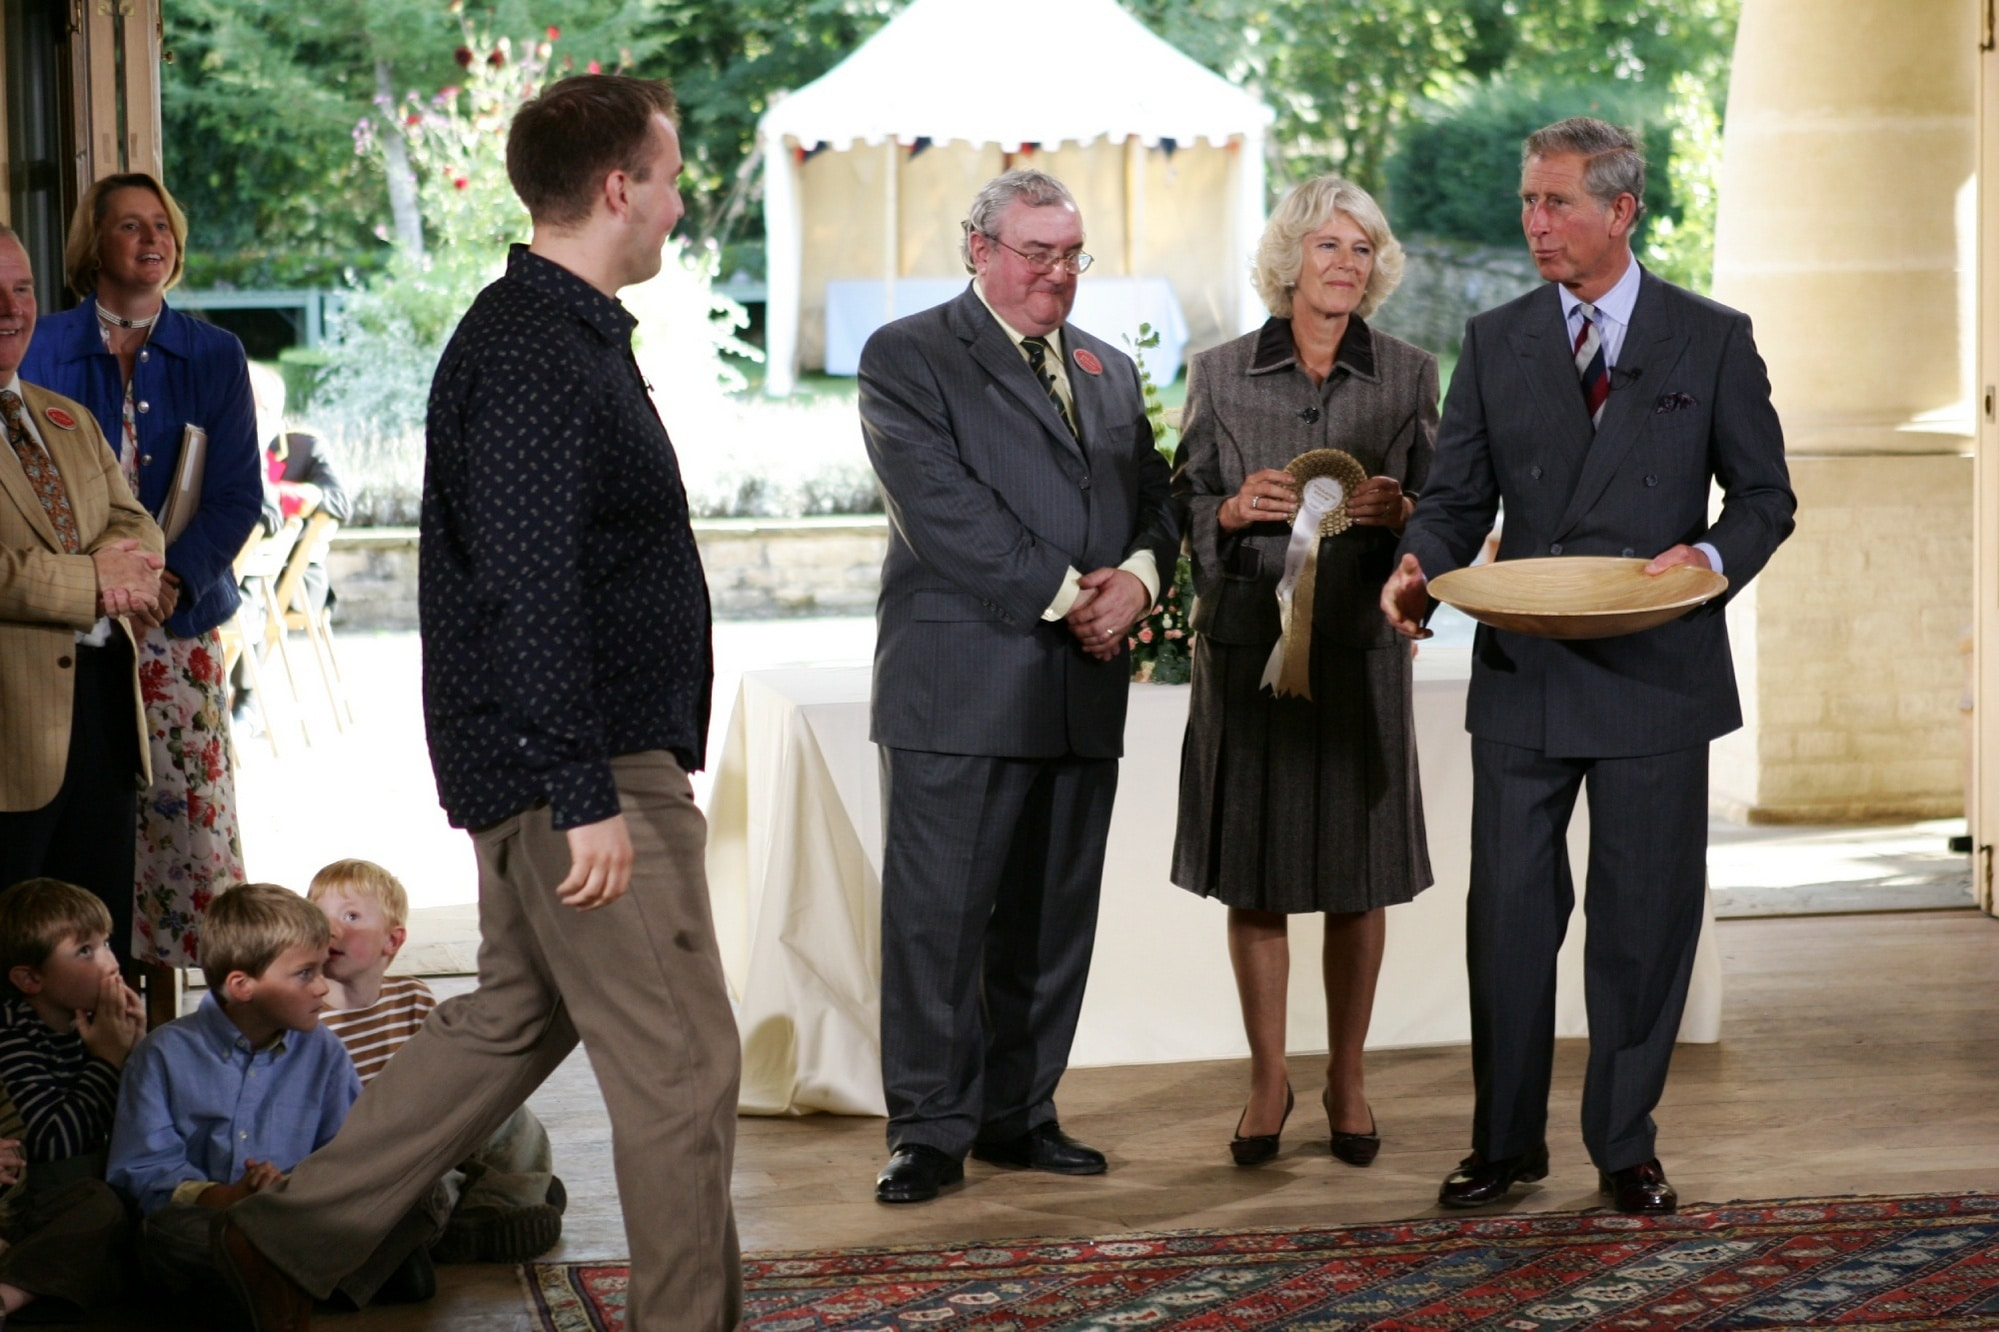 Kevin fortey with Prince Charles and Camilla Copyright Paul Burns Photography Royal Photographer